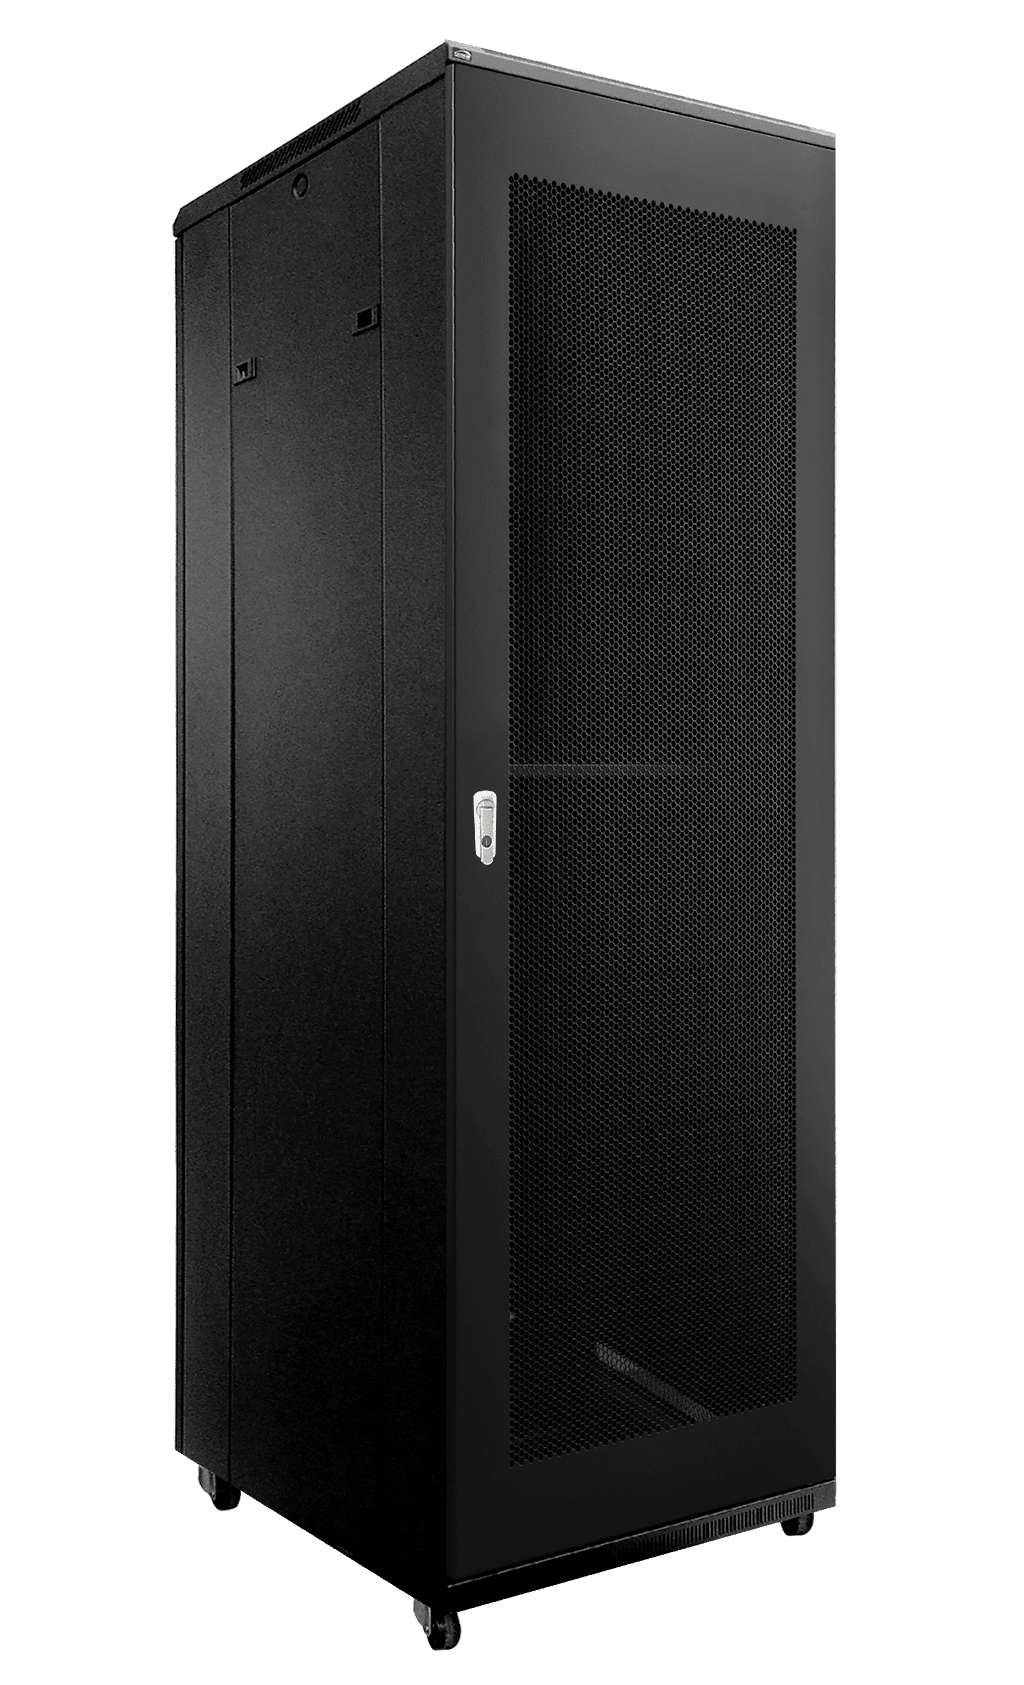 "SPR842GG - 19"" rack cabinet - 42 units - 600mm W x 800mm D - Grill front & rear door"